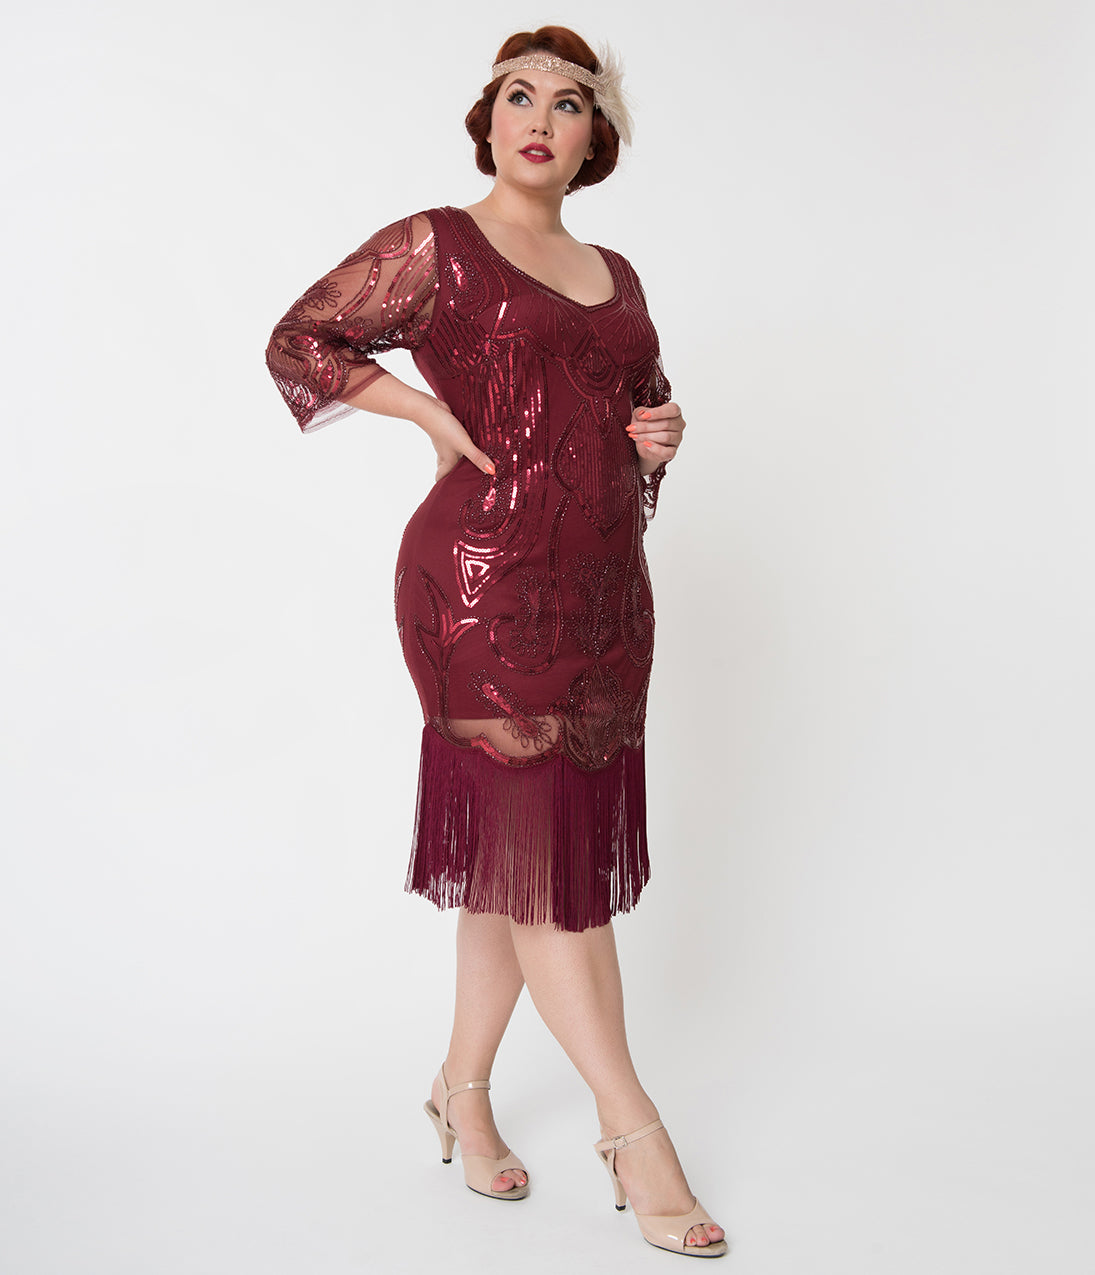 e14268269f Nightingales Beaded Dress.  92.00 JDWilliams. 1920s Formal Dresses    Evening Gowns Guide Unique Vintage Plus Size Burgundy Red Sequin Margaux  Sleeved